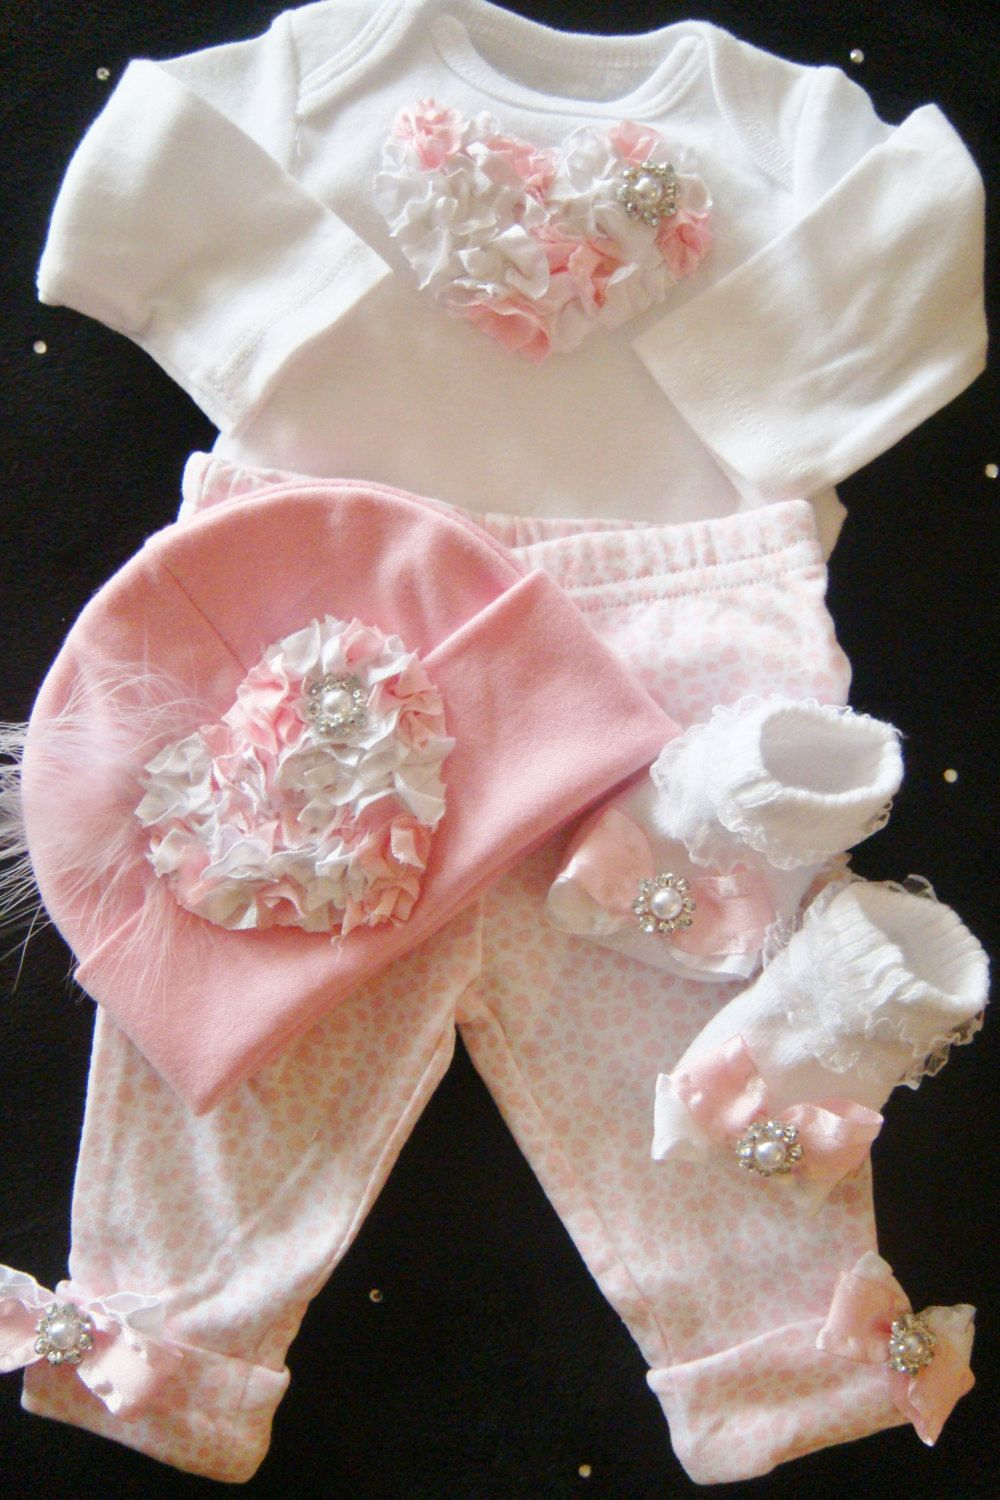 Newborn Baby Girl Take Home Outfit Complete With Oversized